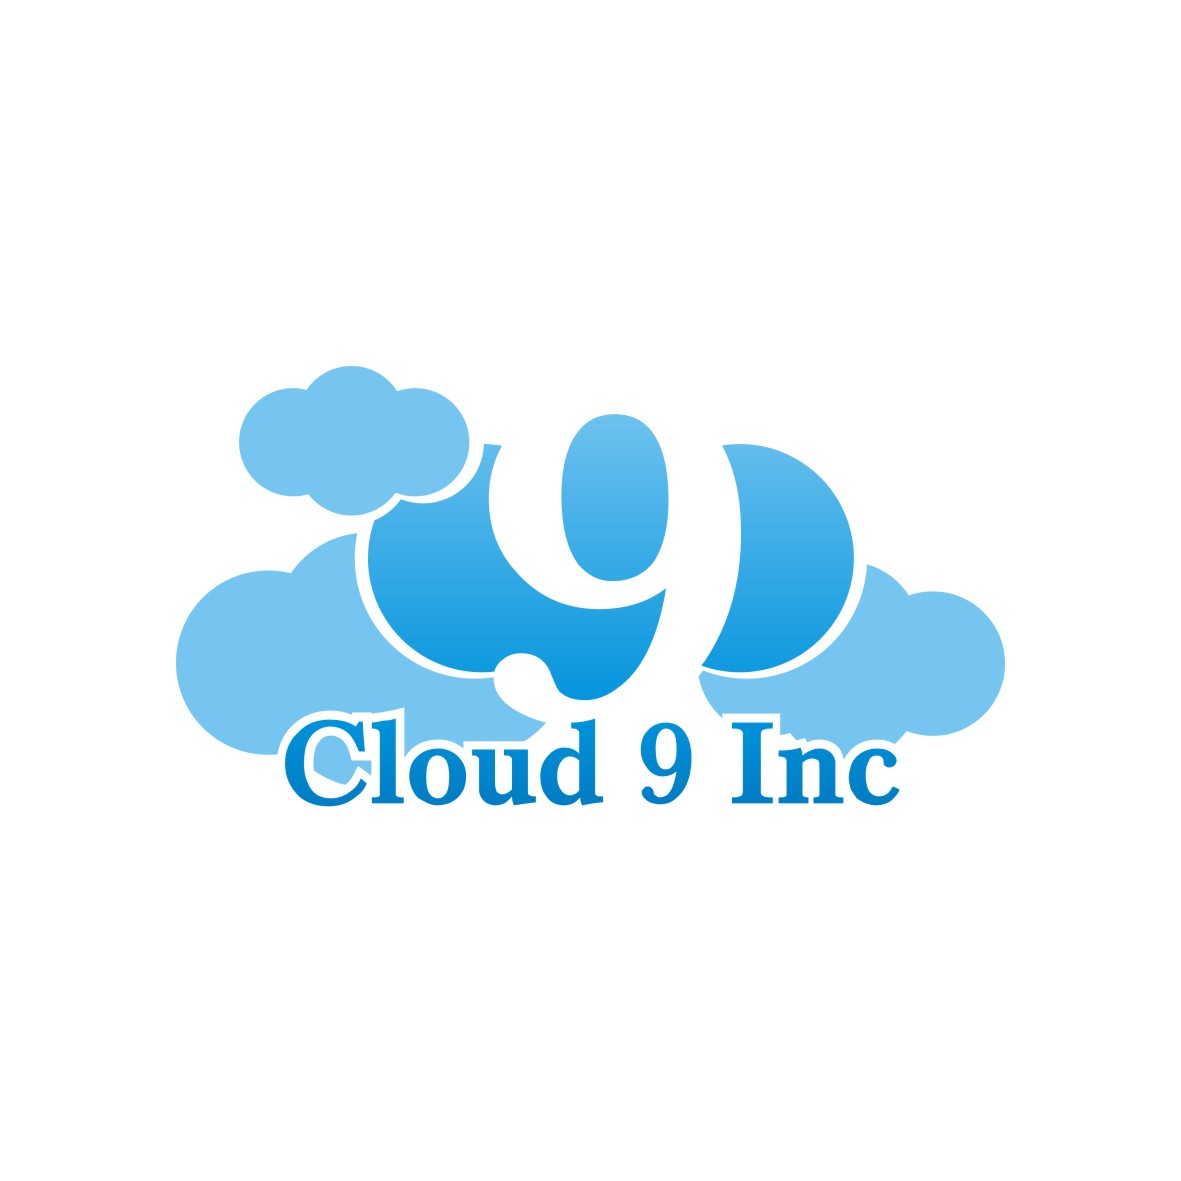 Logo Design by arteo_design - Entry No. 25 in the Logo Design Contest Unique Logo Design Wanted for Cloud 9 Inc.